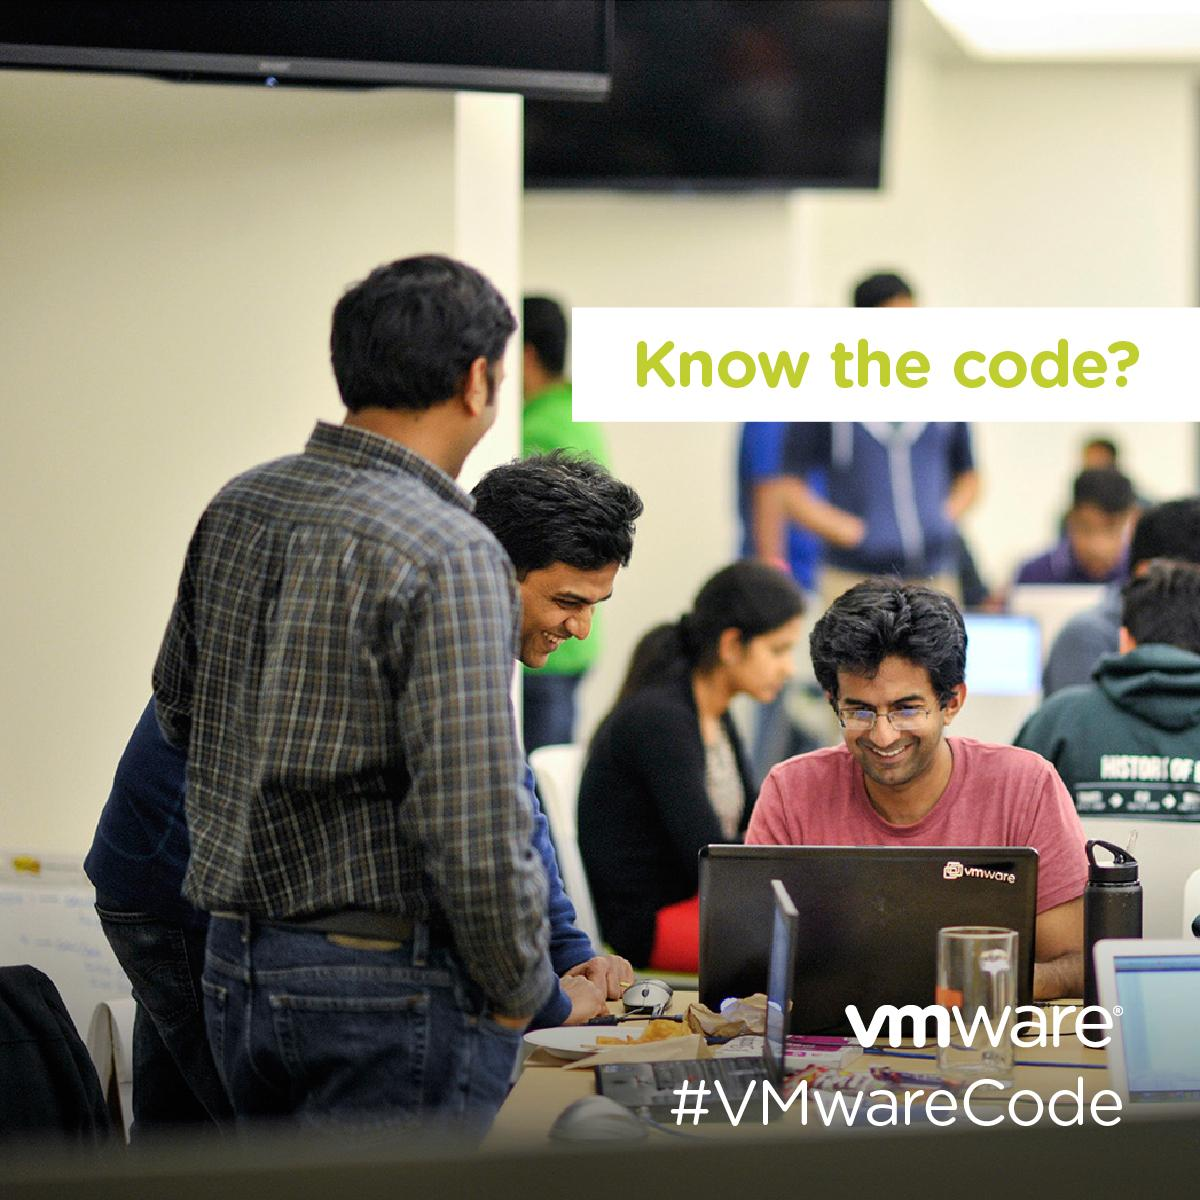 Know the code? Learn, engage & play on @VMware's NEW @hackerrank profile. http://t.co/UQtTCqO70y #VMwareCode http://t.co/dbCPRaqxCZ